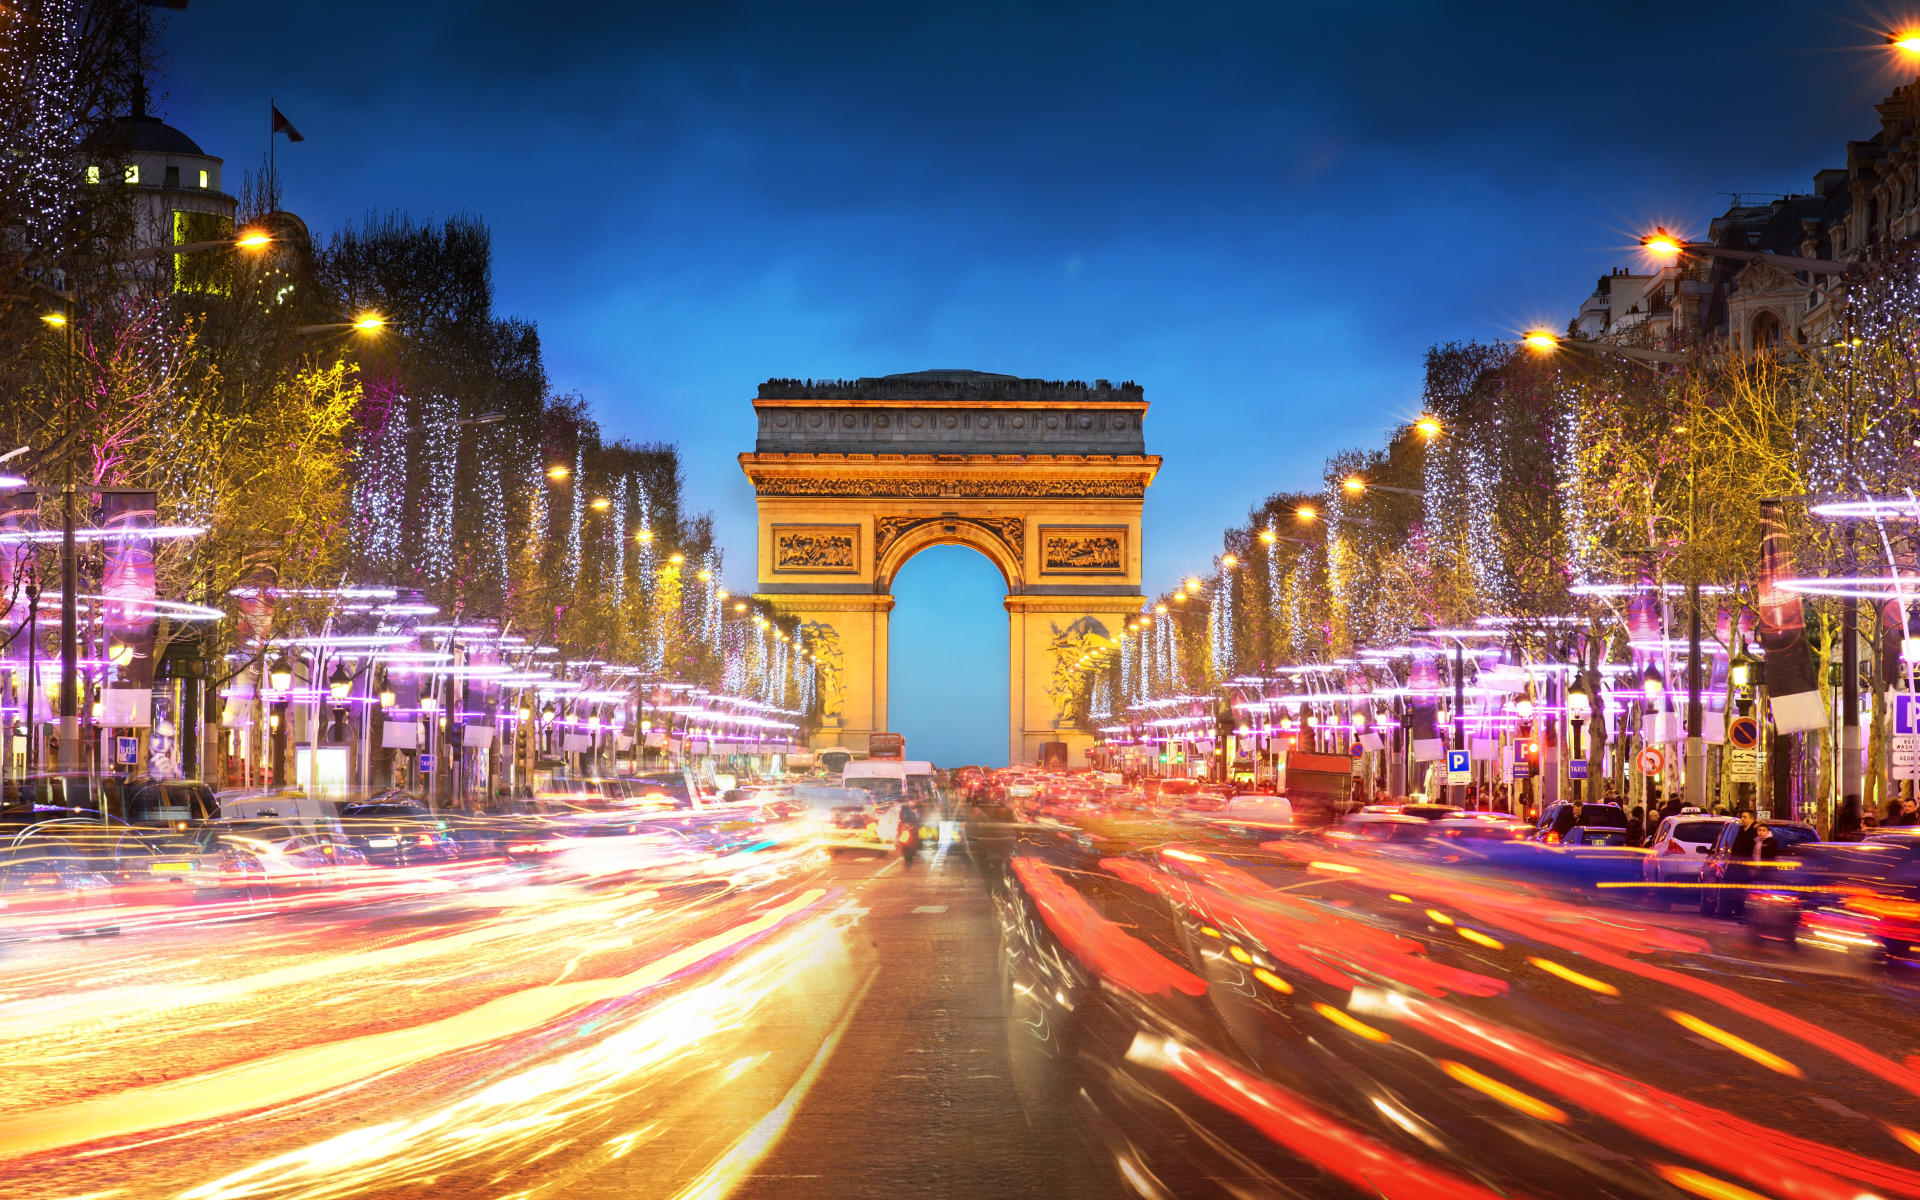 266/6-tourisme/Champs-Elysees paris.jpg